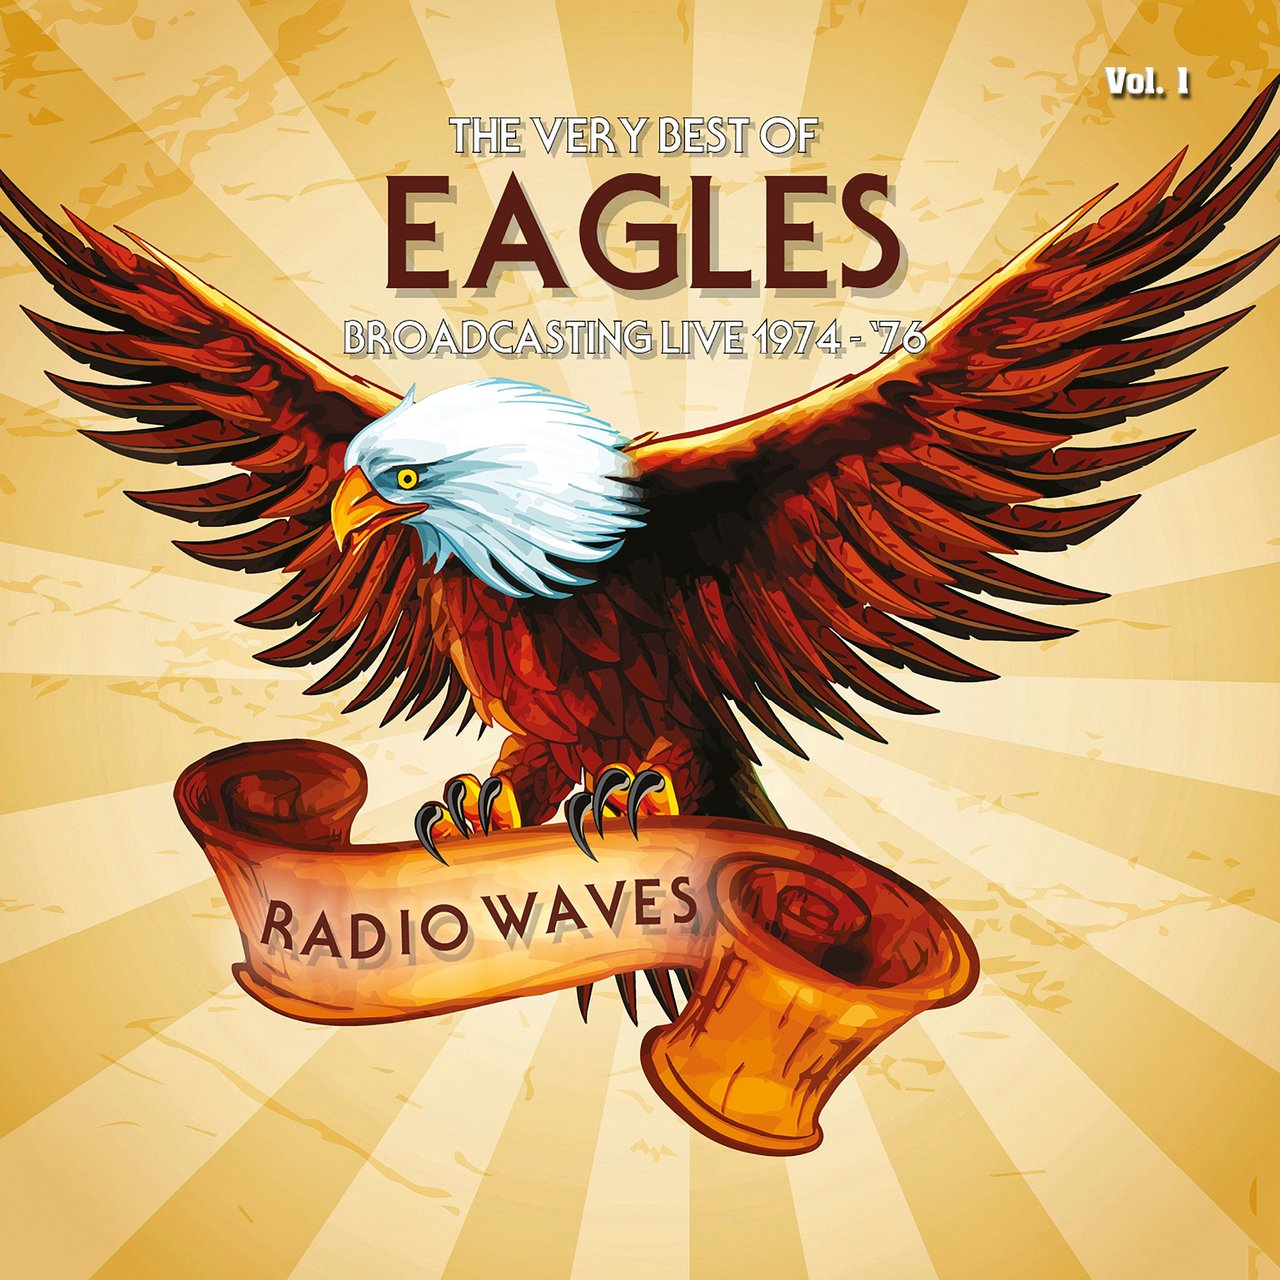 Radio Waves: The Very Best Of Eagles Broadcasting Live 1974-1976, Vol. 1